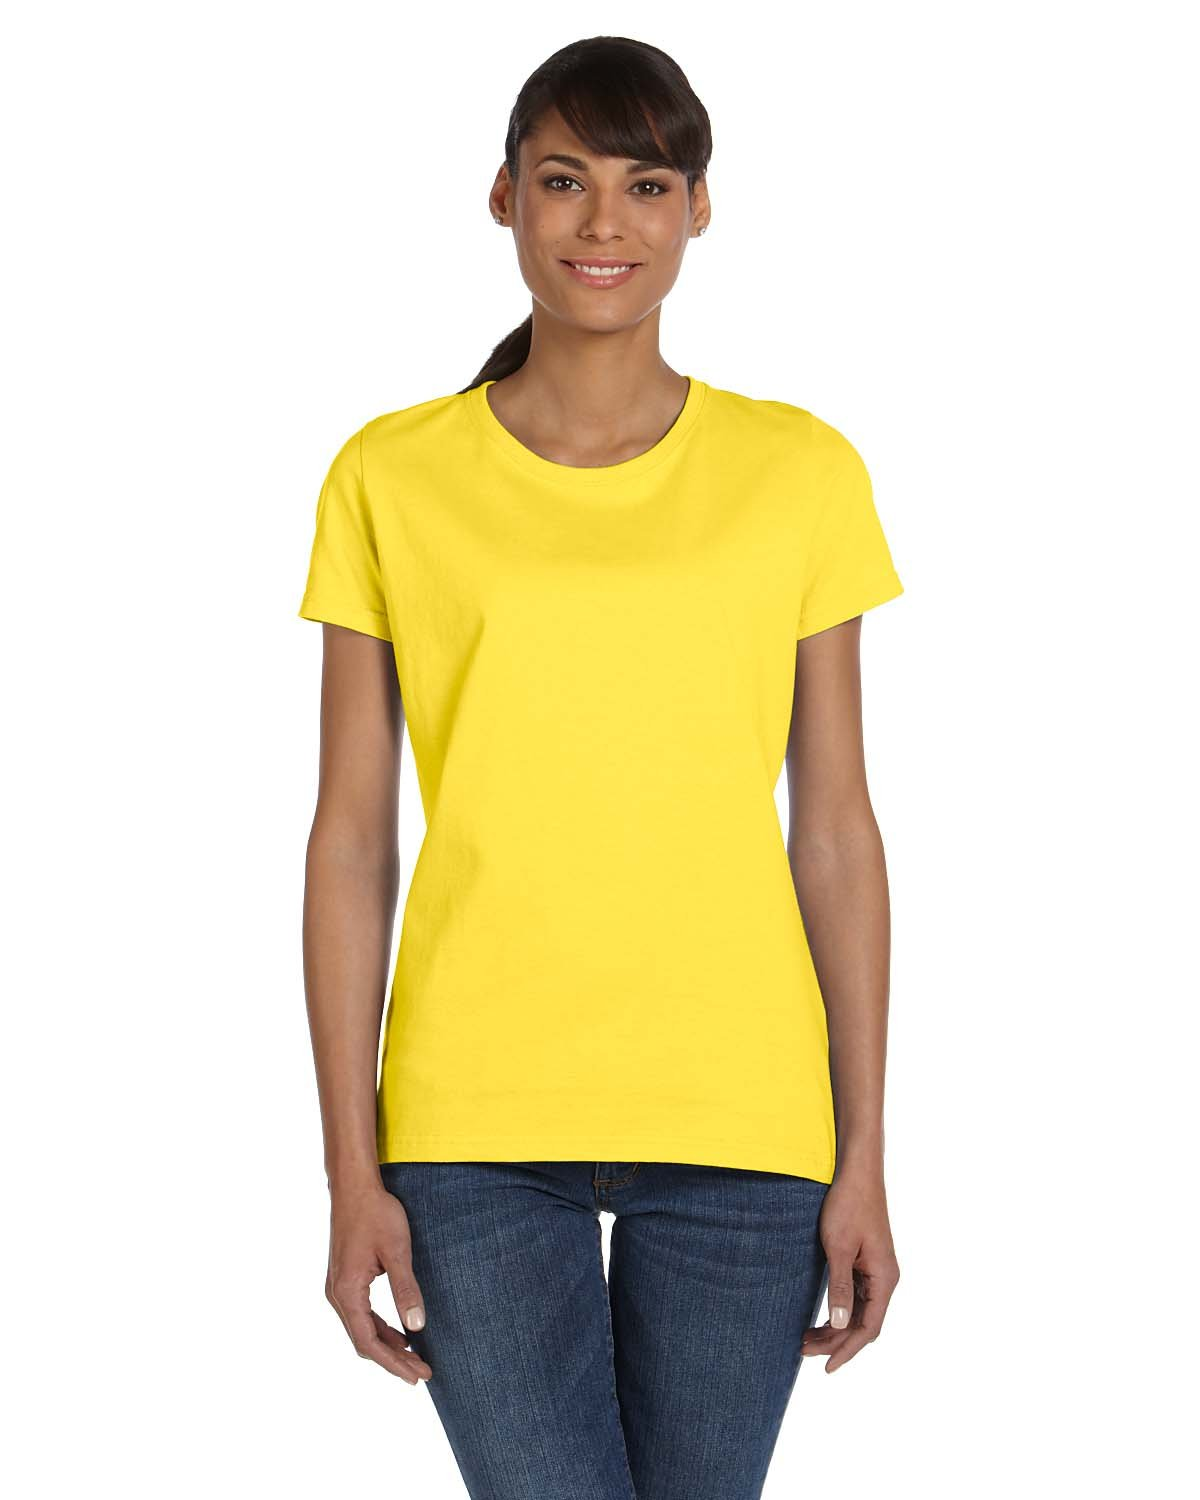 Fruit of the Loom Ladies' HD Cotton™ T-Shirt YELLOW